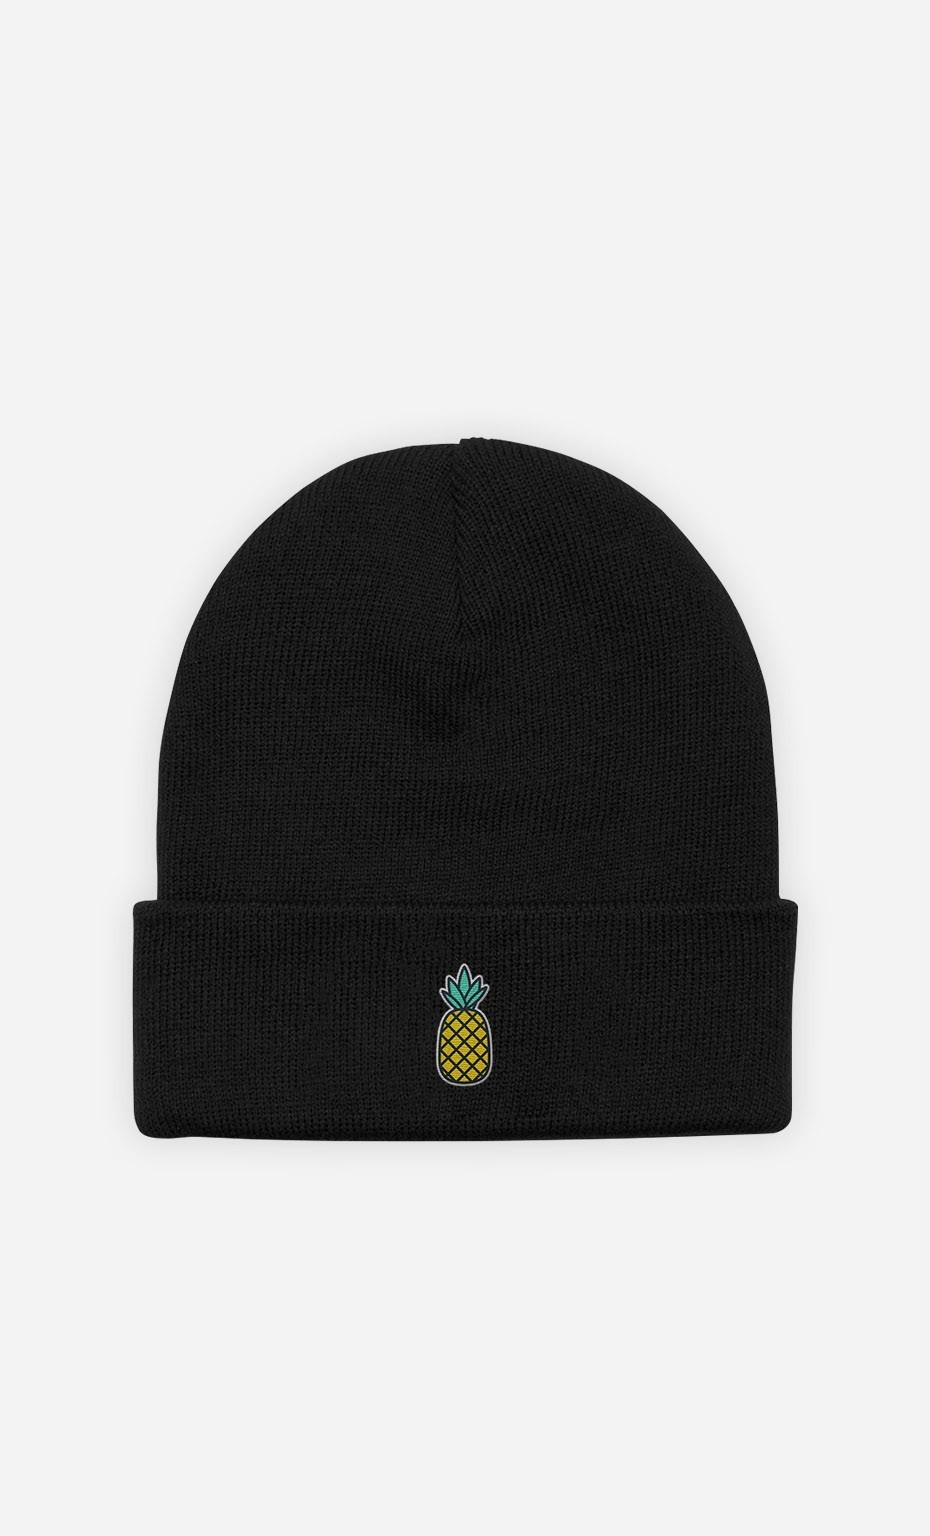 Beanie Pineapple - Embroidered